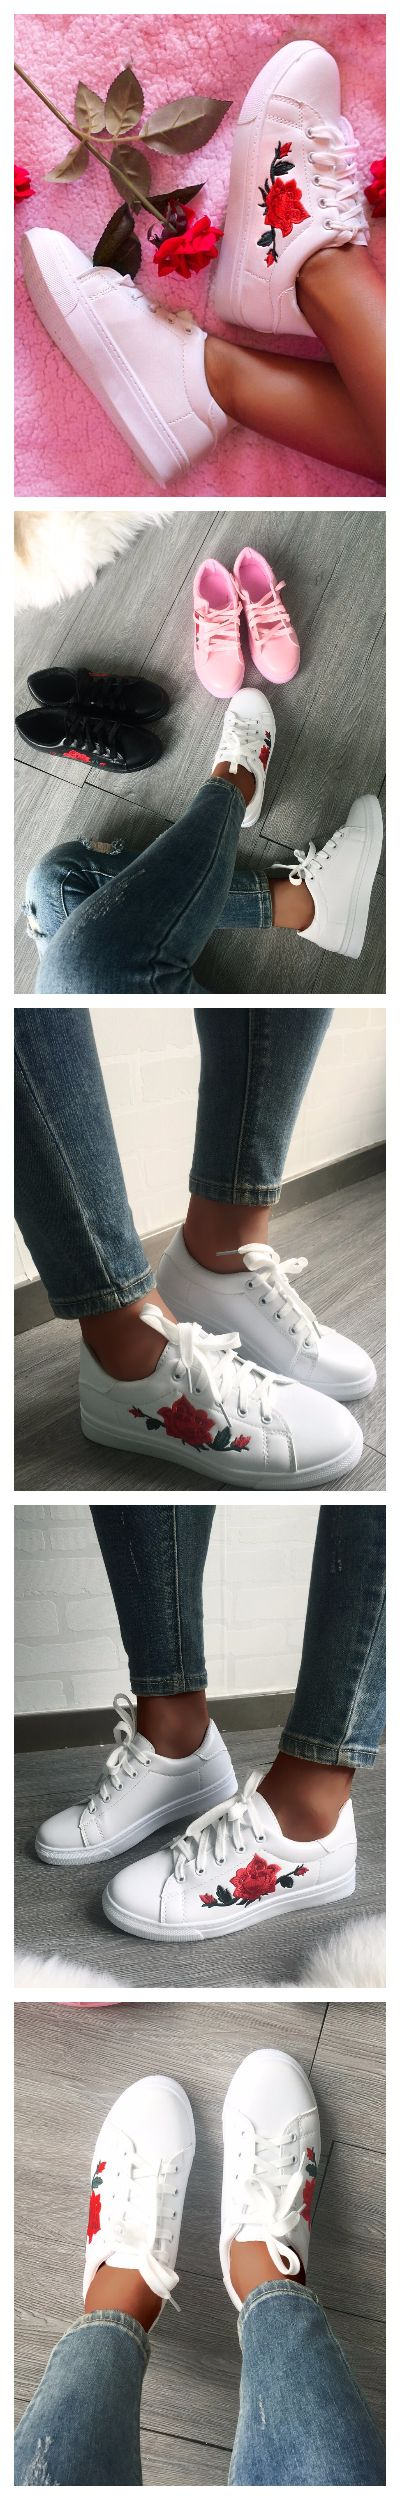 Fashion Lace-up Floral Applique Sneakers €21 Description color:Black/Pink/White pattern:Patchwork material:Rubber+PU style:Fashion  P.S ALL THE SIZE ARE FOLLOWED BY ASIAN STANDARD  Package Include: 1*Woman Shoes Note: There might be 2-3% difference according to manual measurement. Please check the measurement chart carefully before you buy the item.  +Please note that slight color difference should be acceptable due to the light and screen.